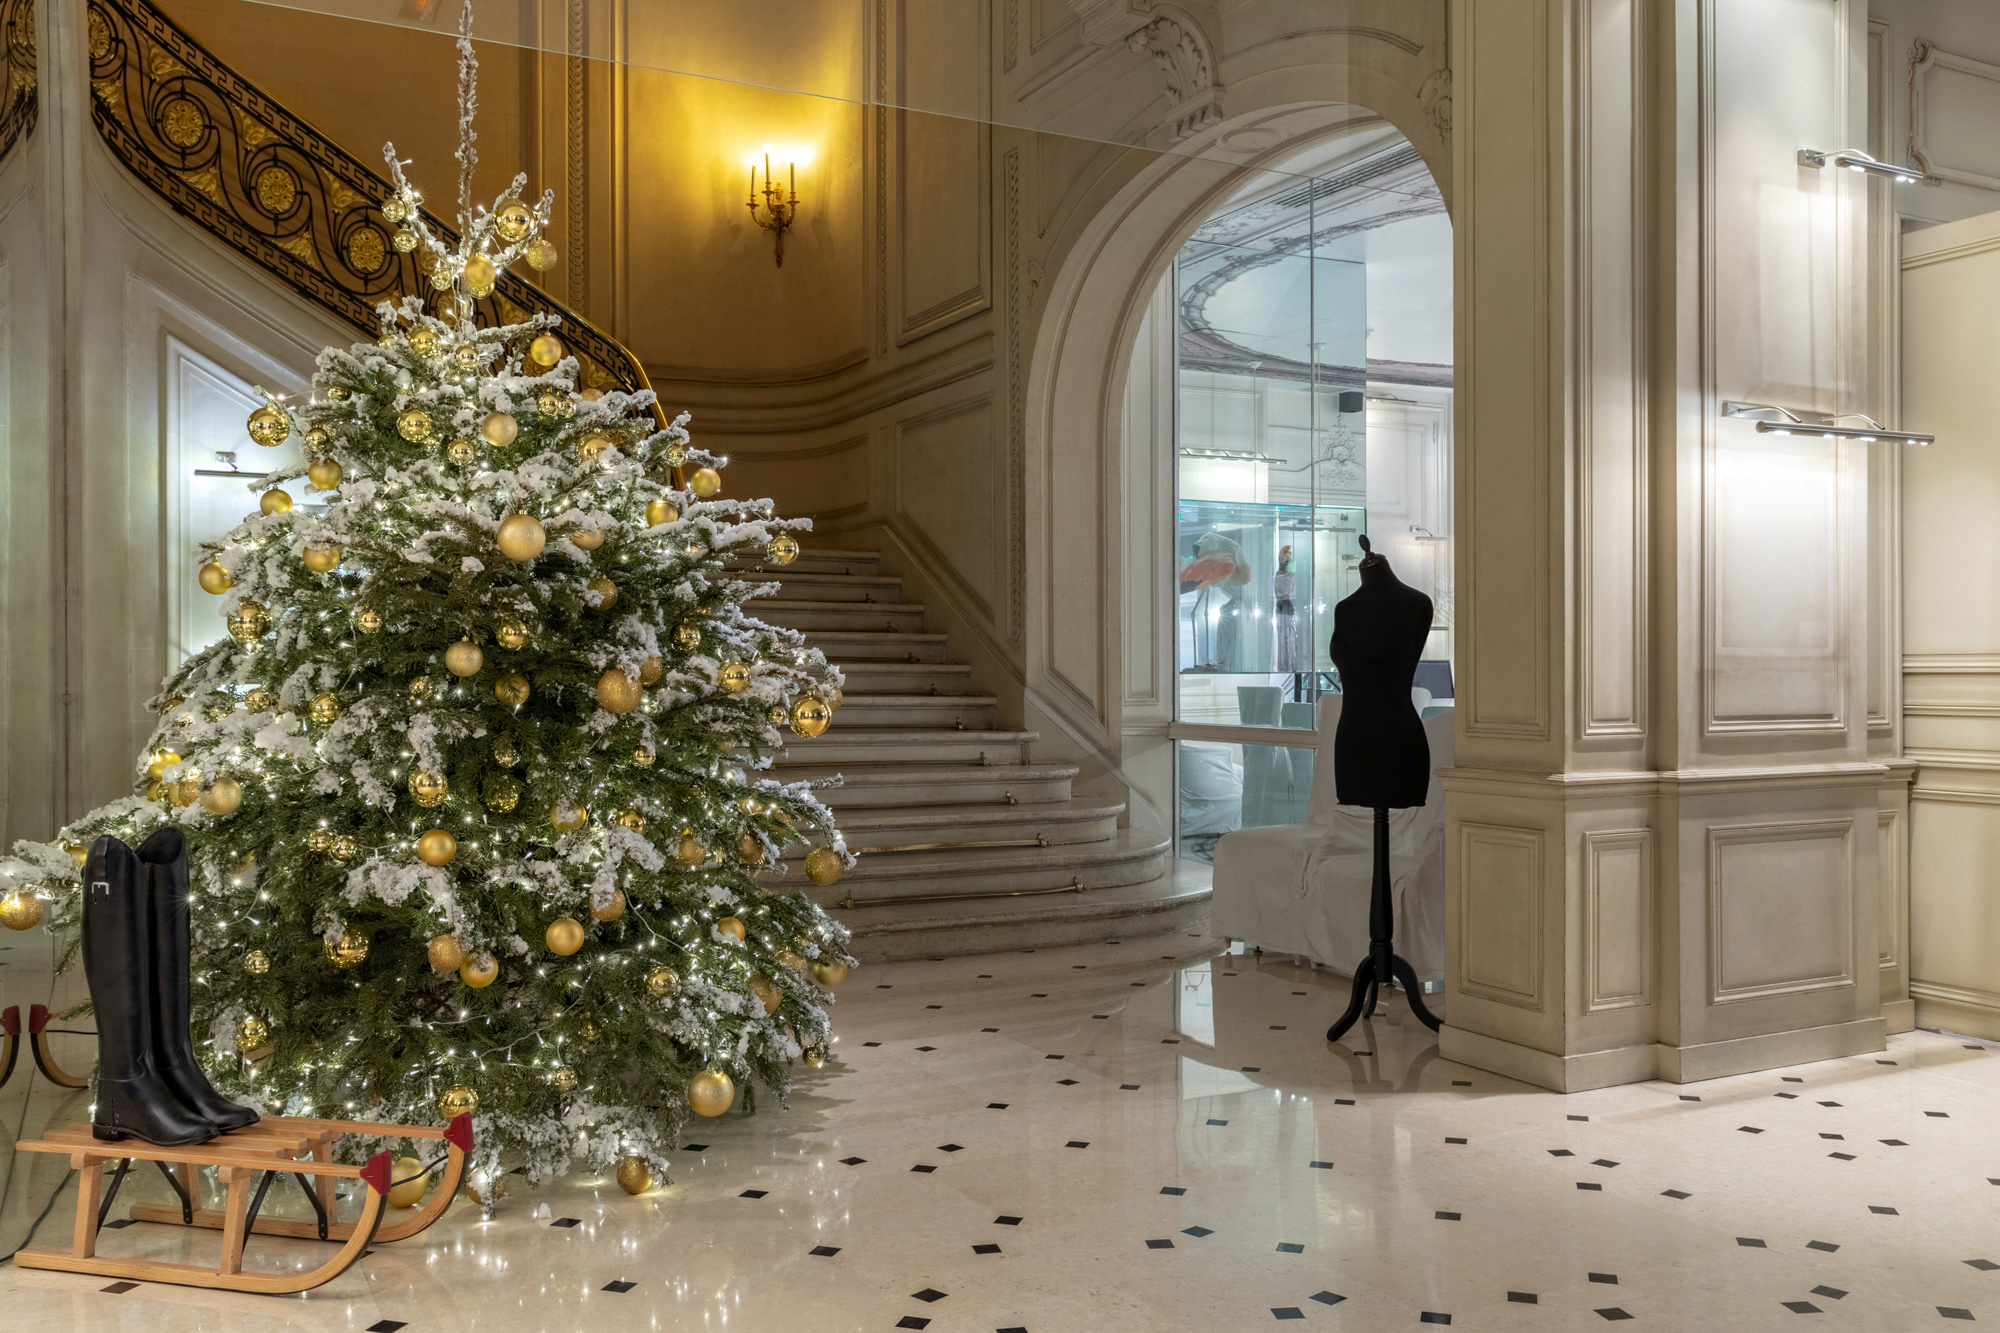 hotel reception; Christmas tree nest to a staircase